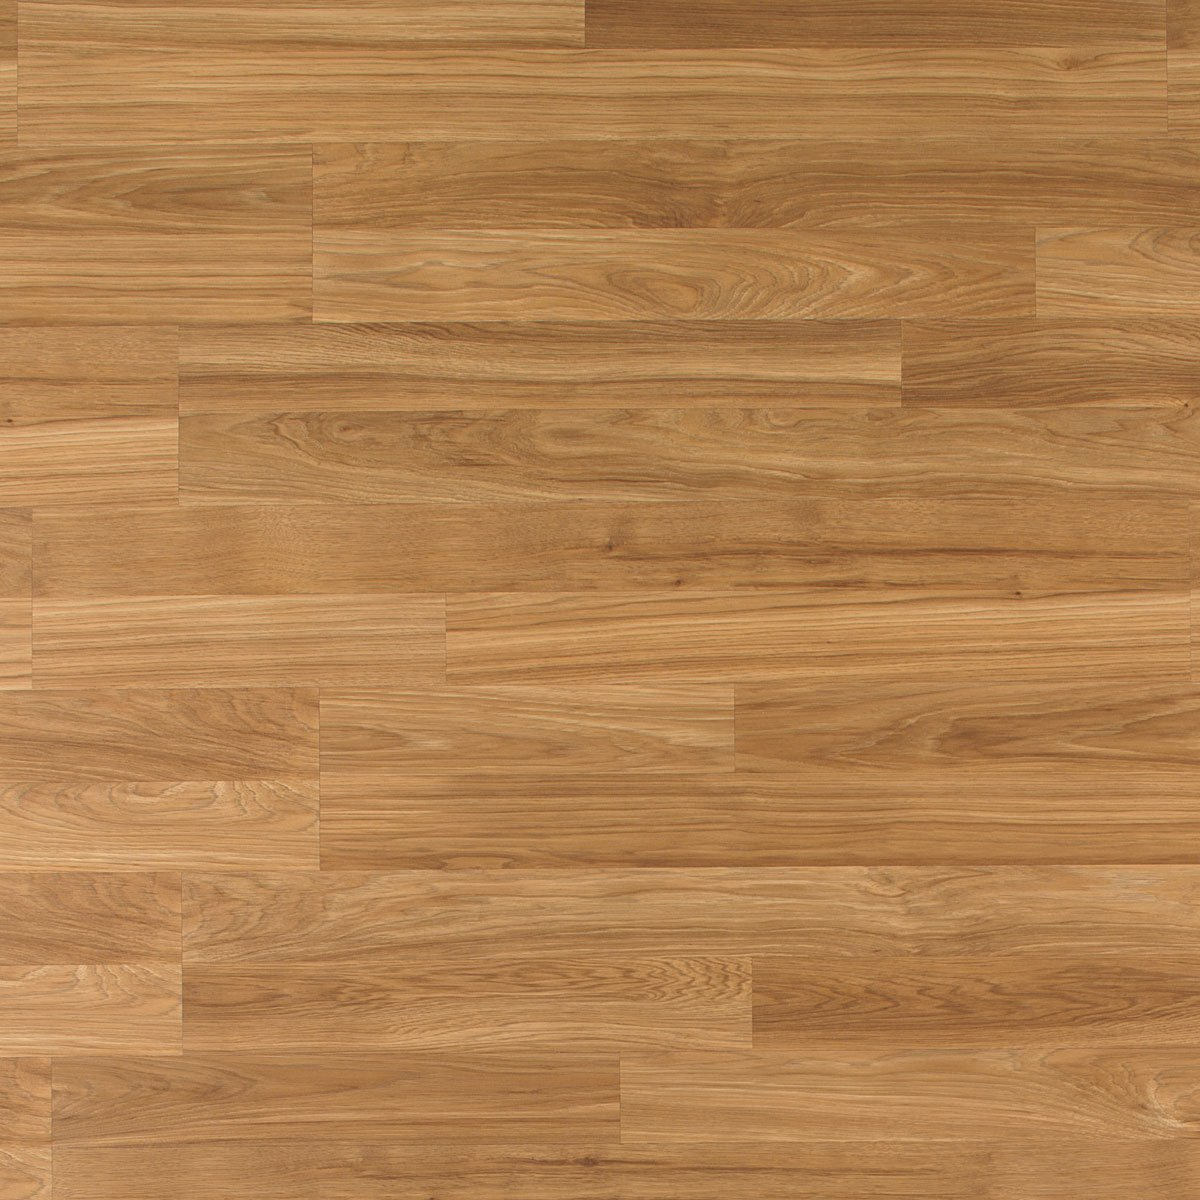 8mm Laminate Flooring By Quick Step